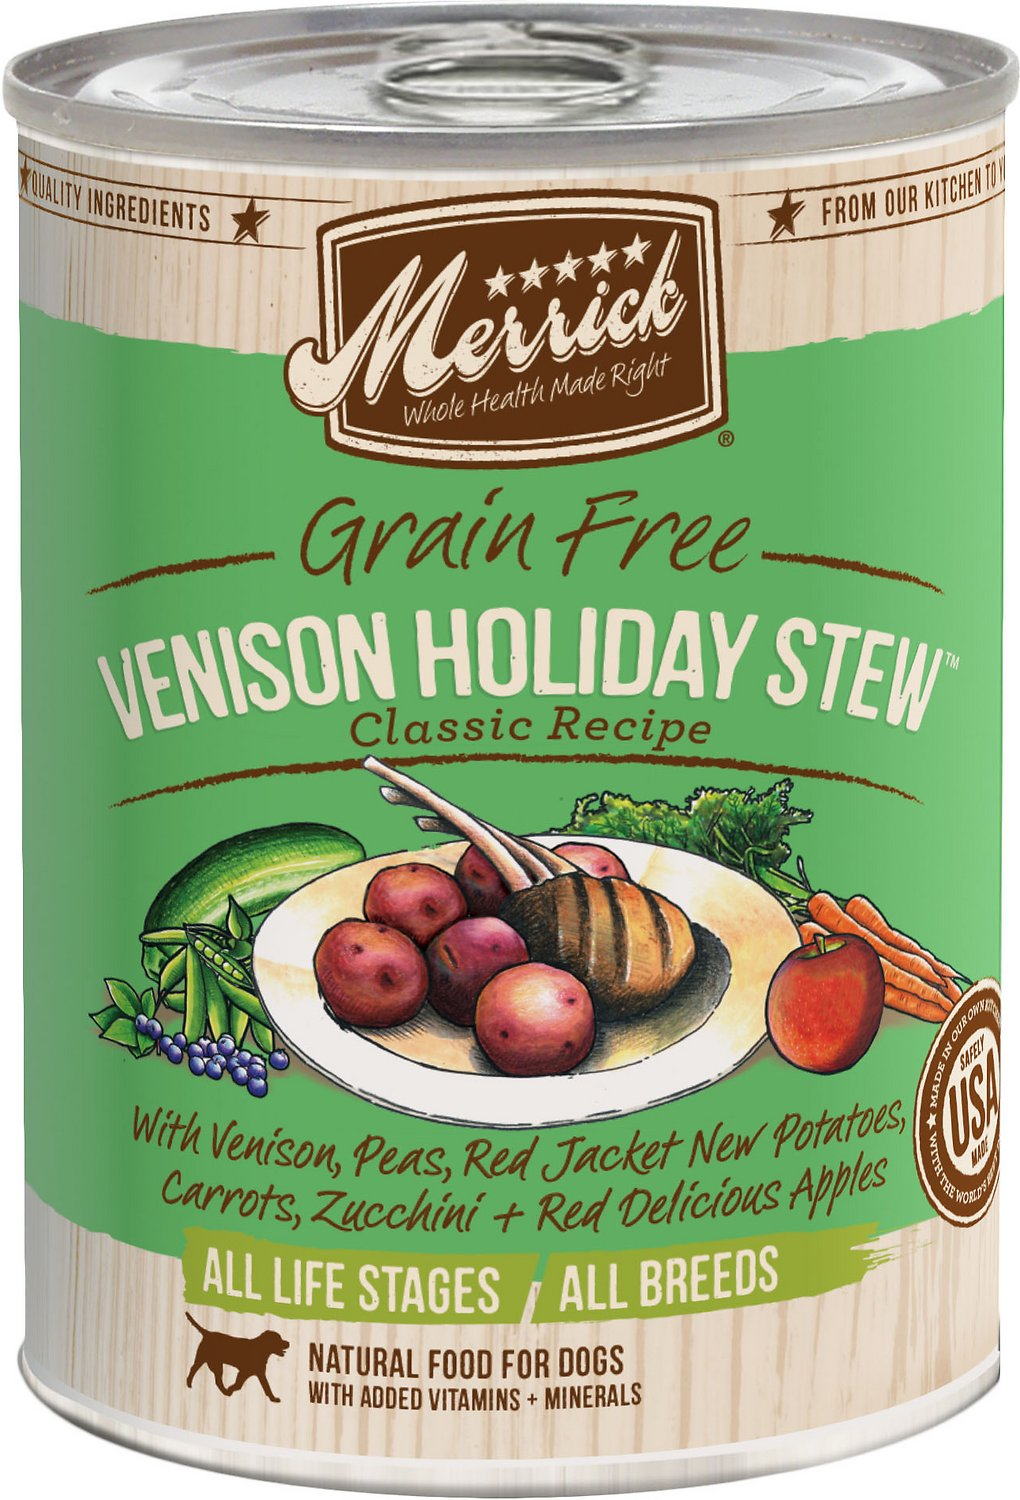 Merrick Grain-Free Venison Holiday Stew Canned Dog Food, 13.2-oz